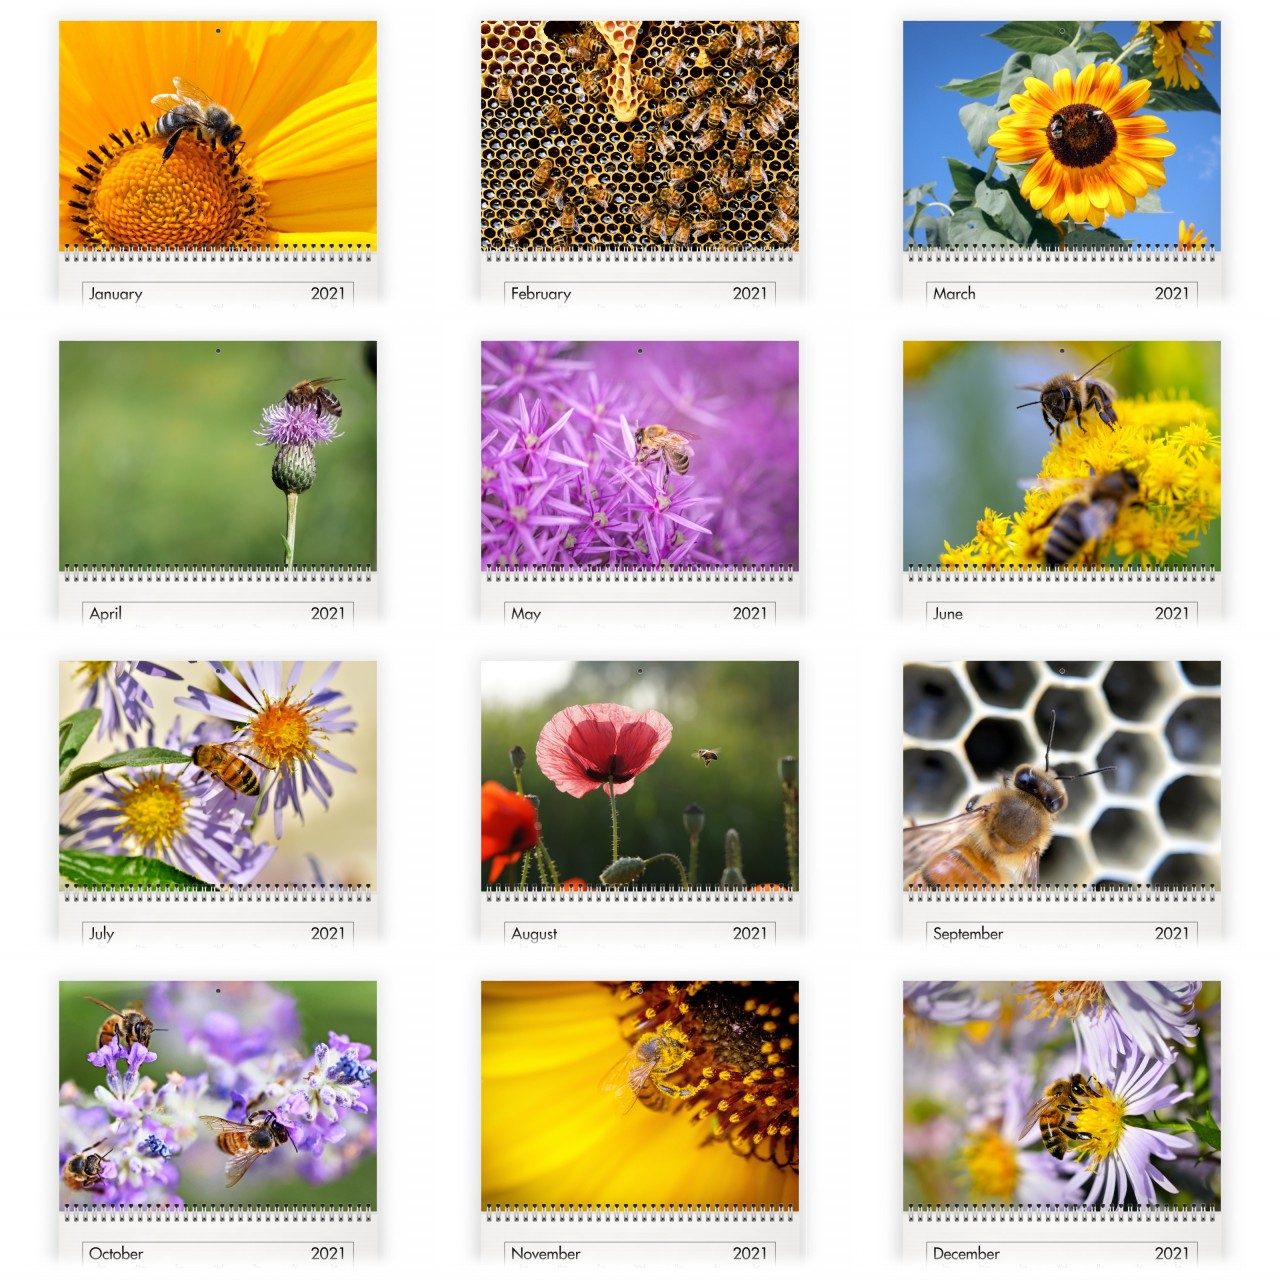 Bee 2021 Calendar pertaining to National Food Calendar 2021